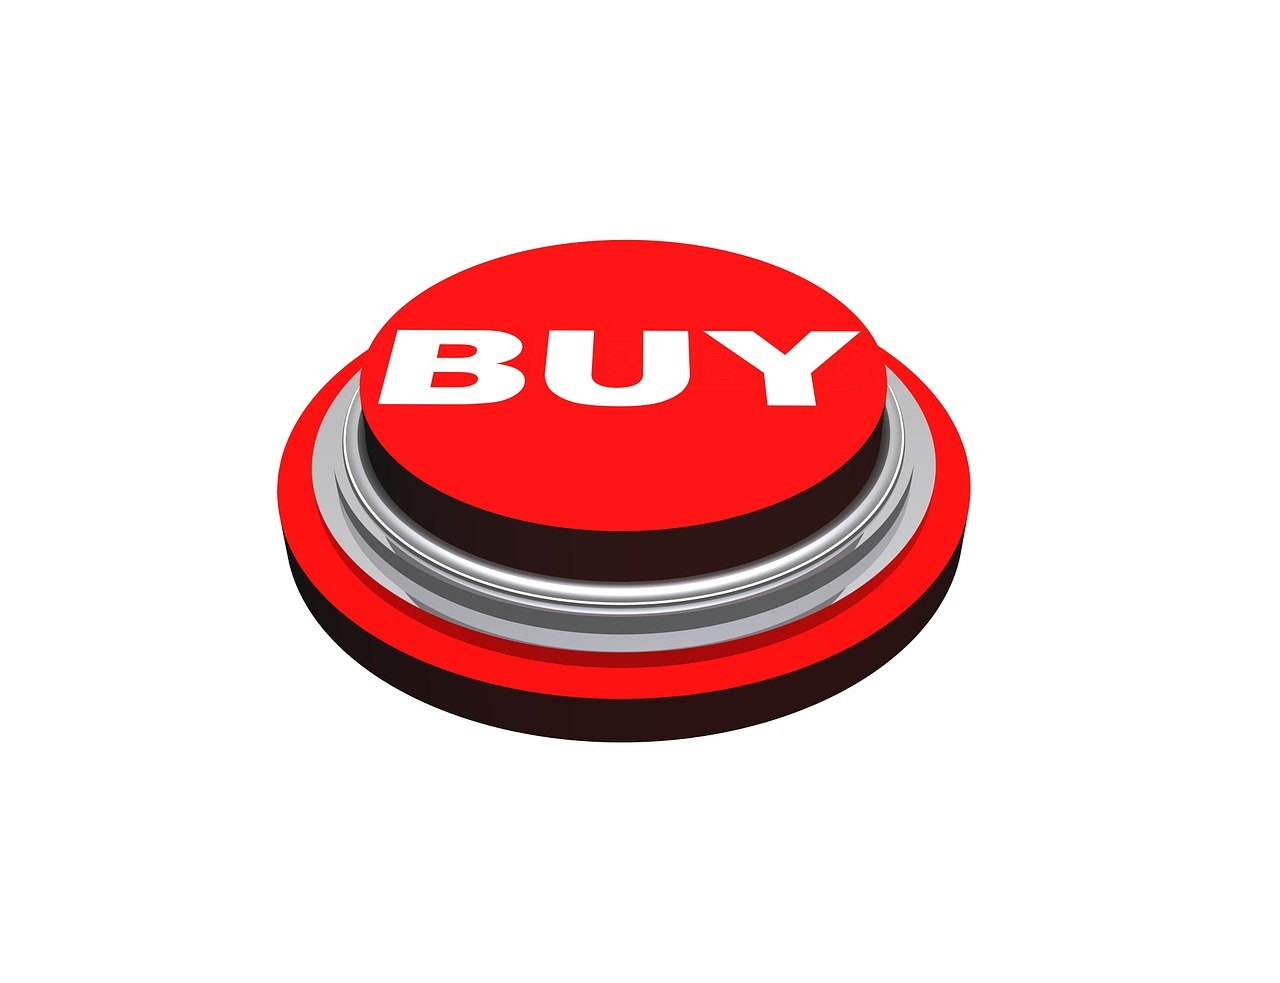 Buy button for online lessons